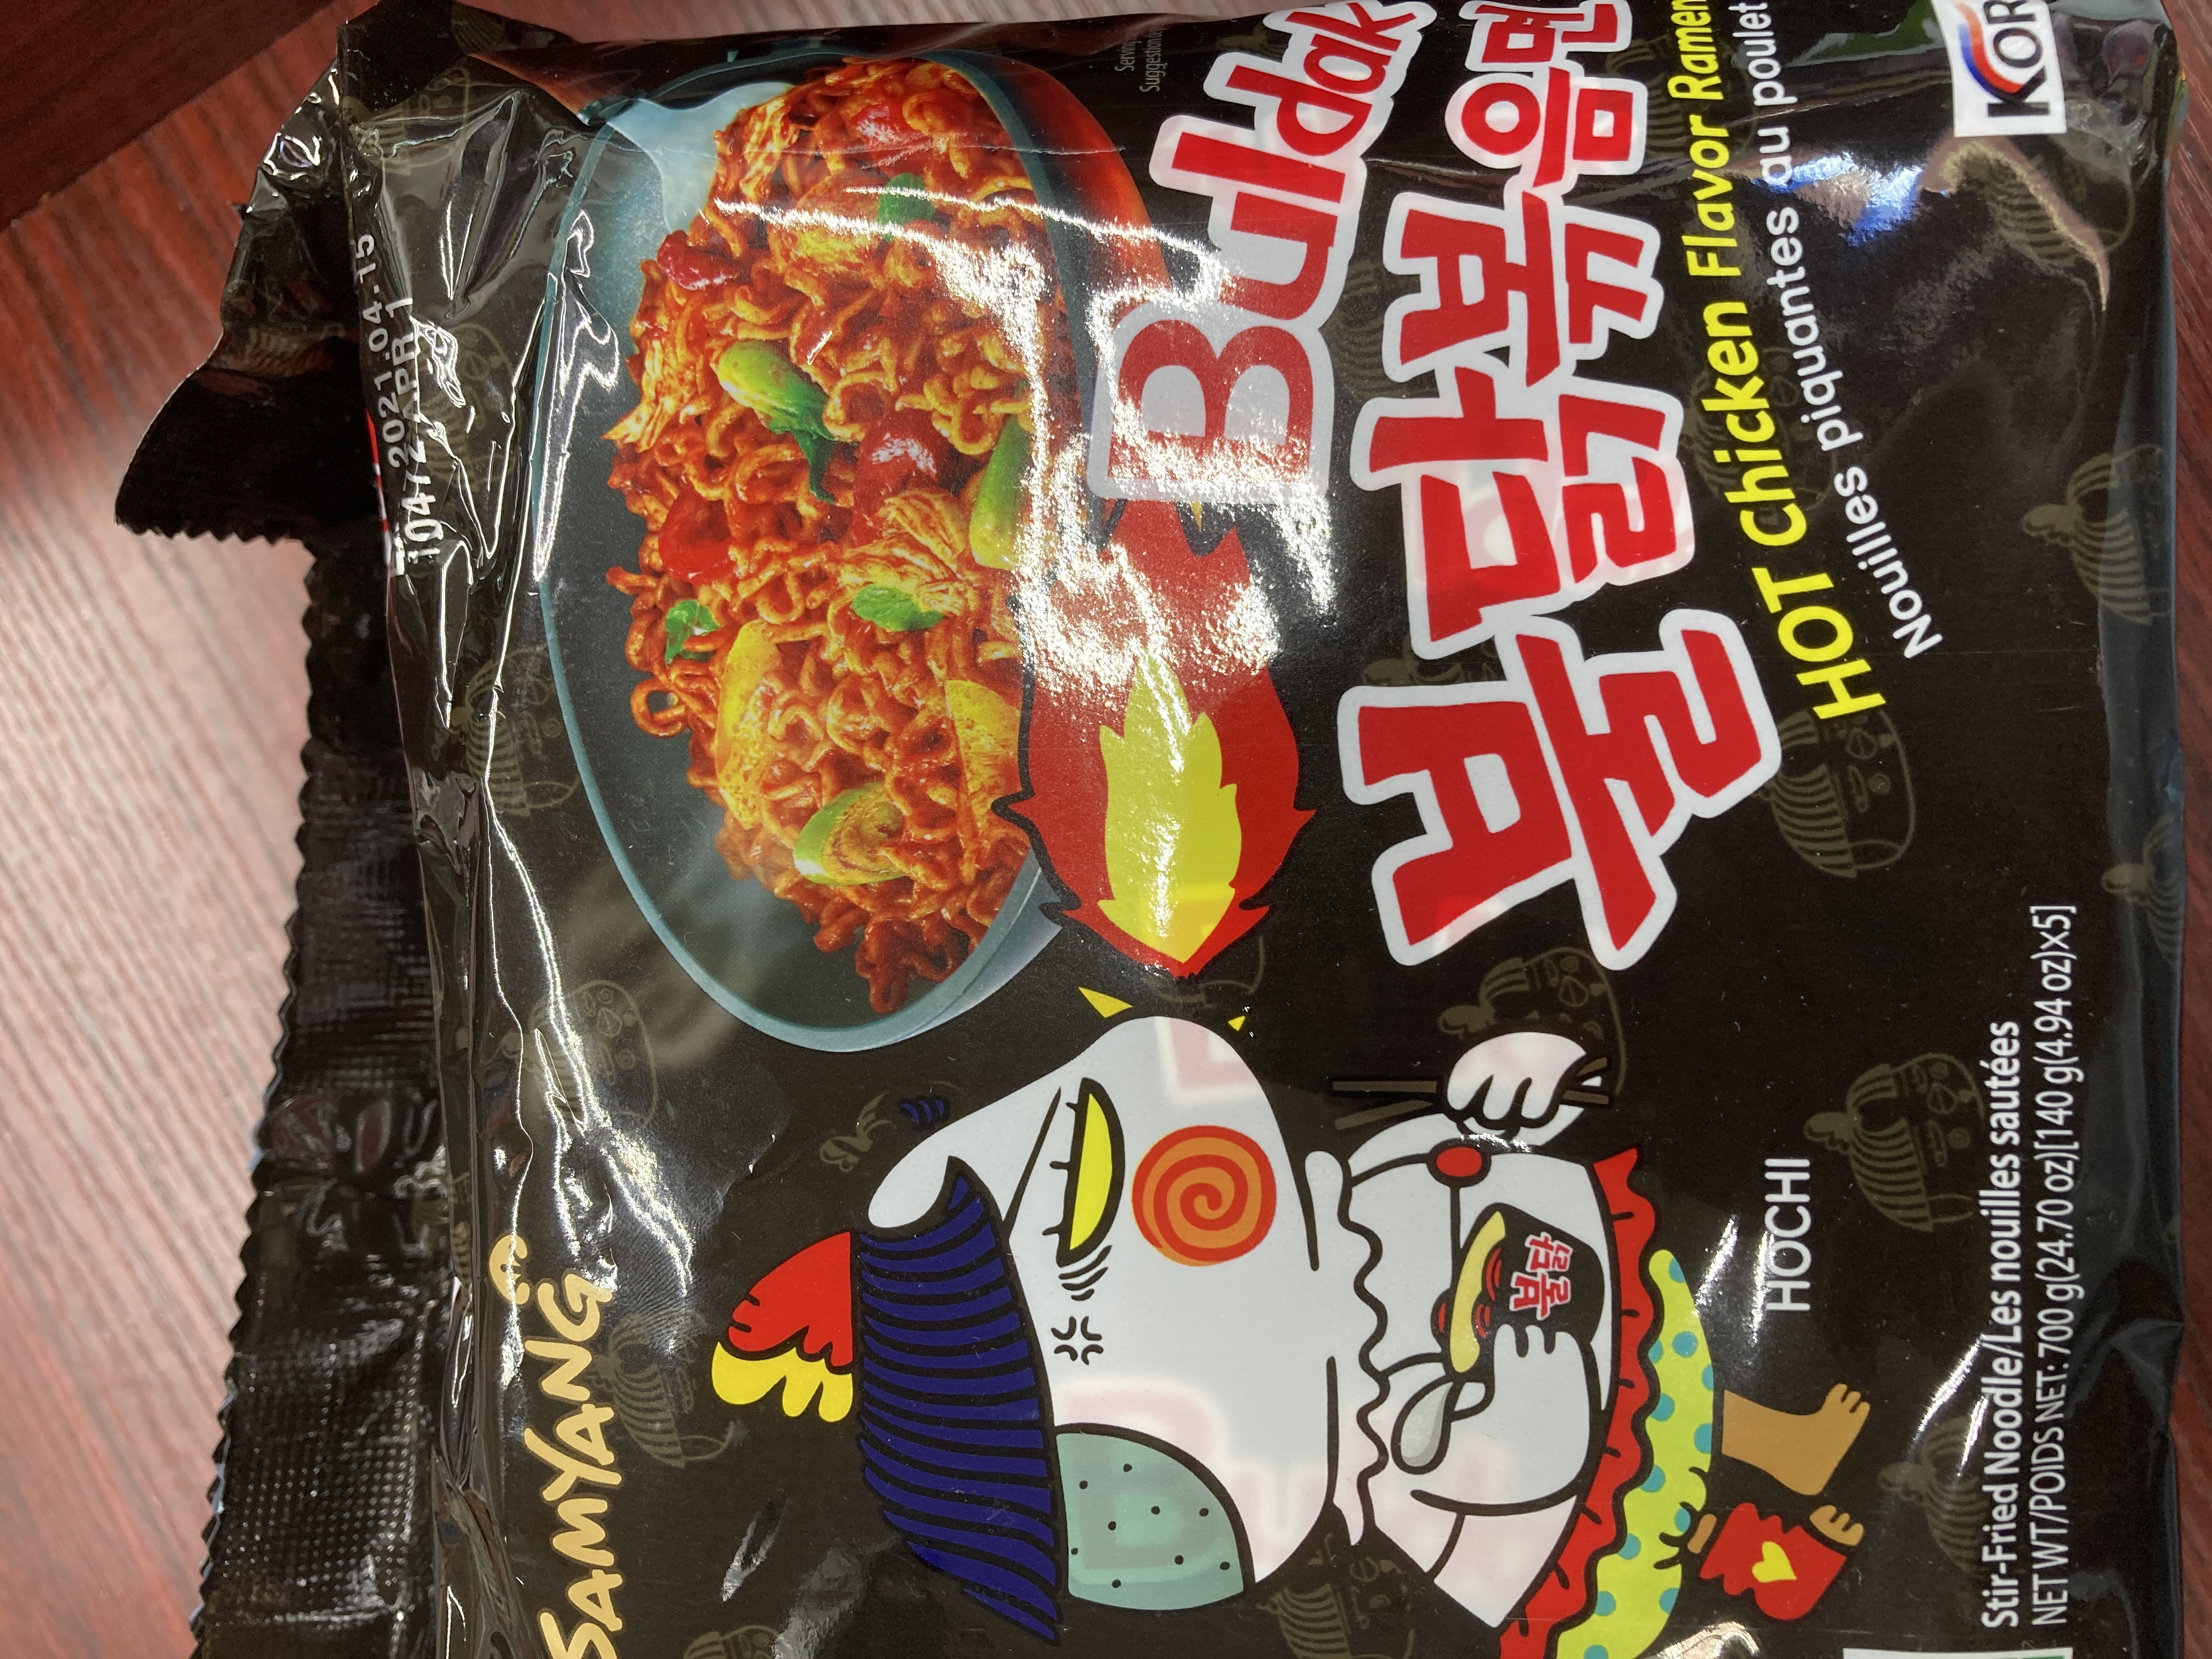 SAMYANG HOT CHICKEN FLAVOR RAMEN NOODLES 700G